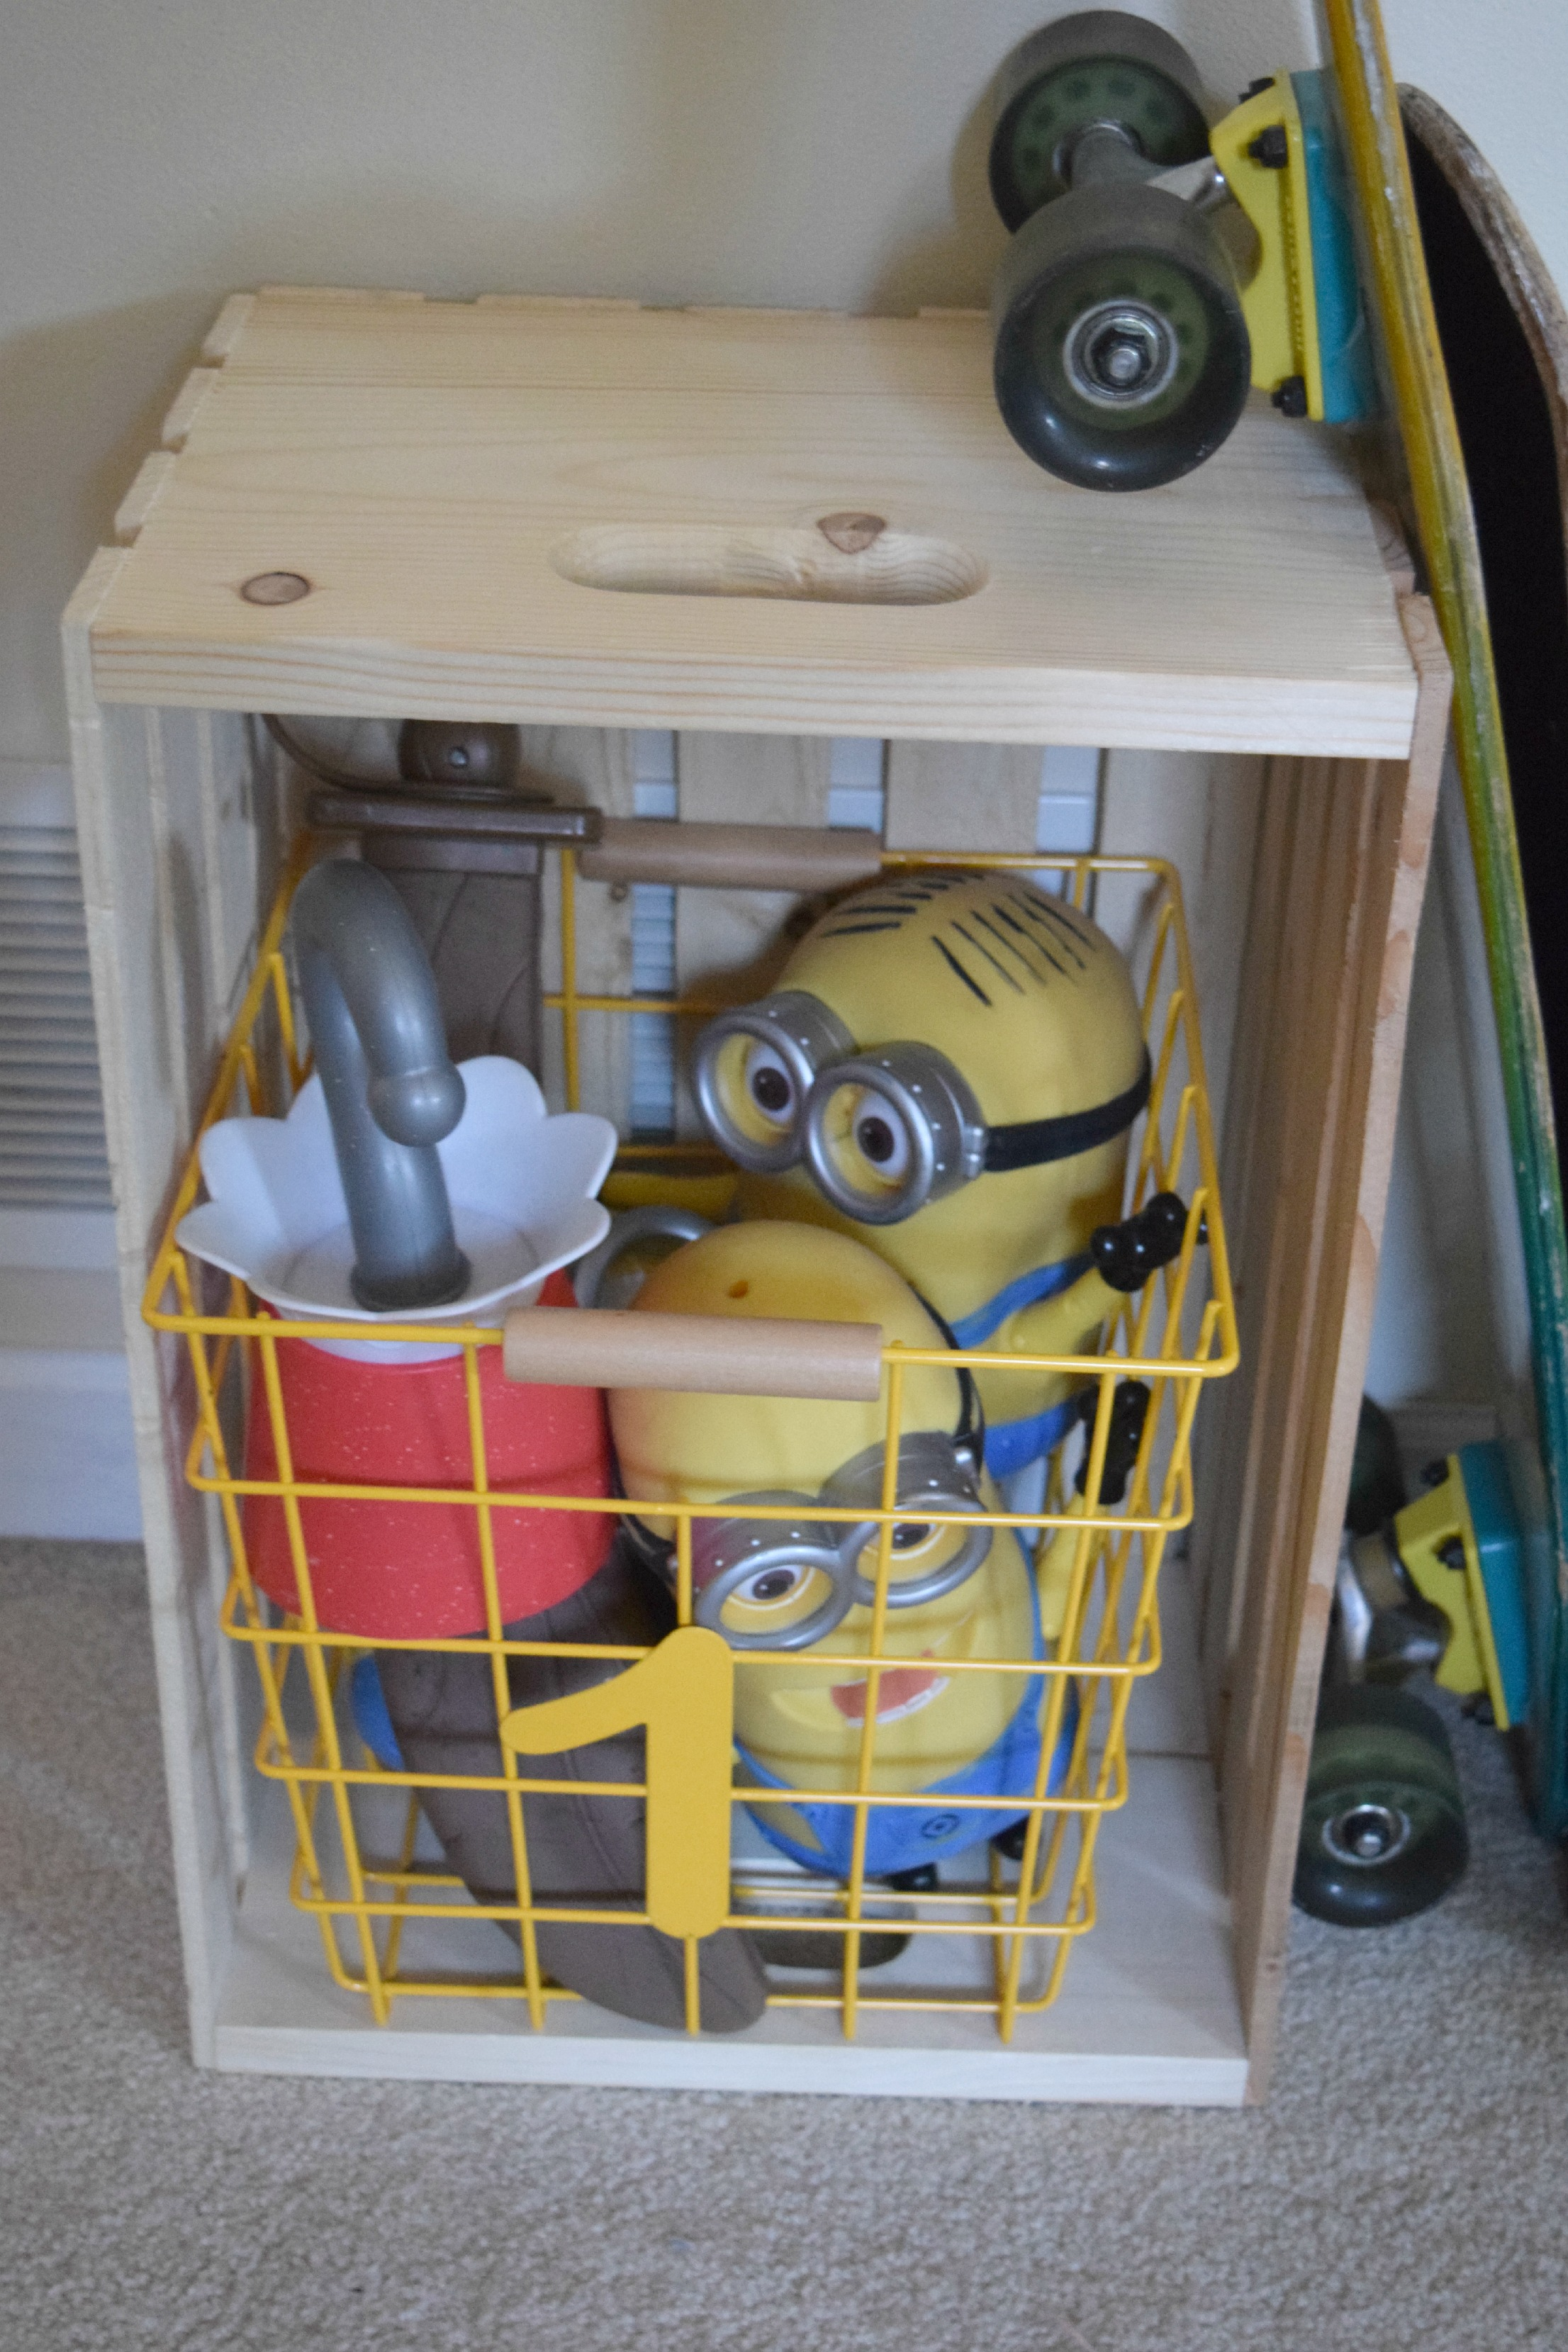 baskets for toy storage